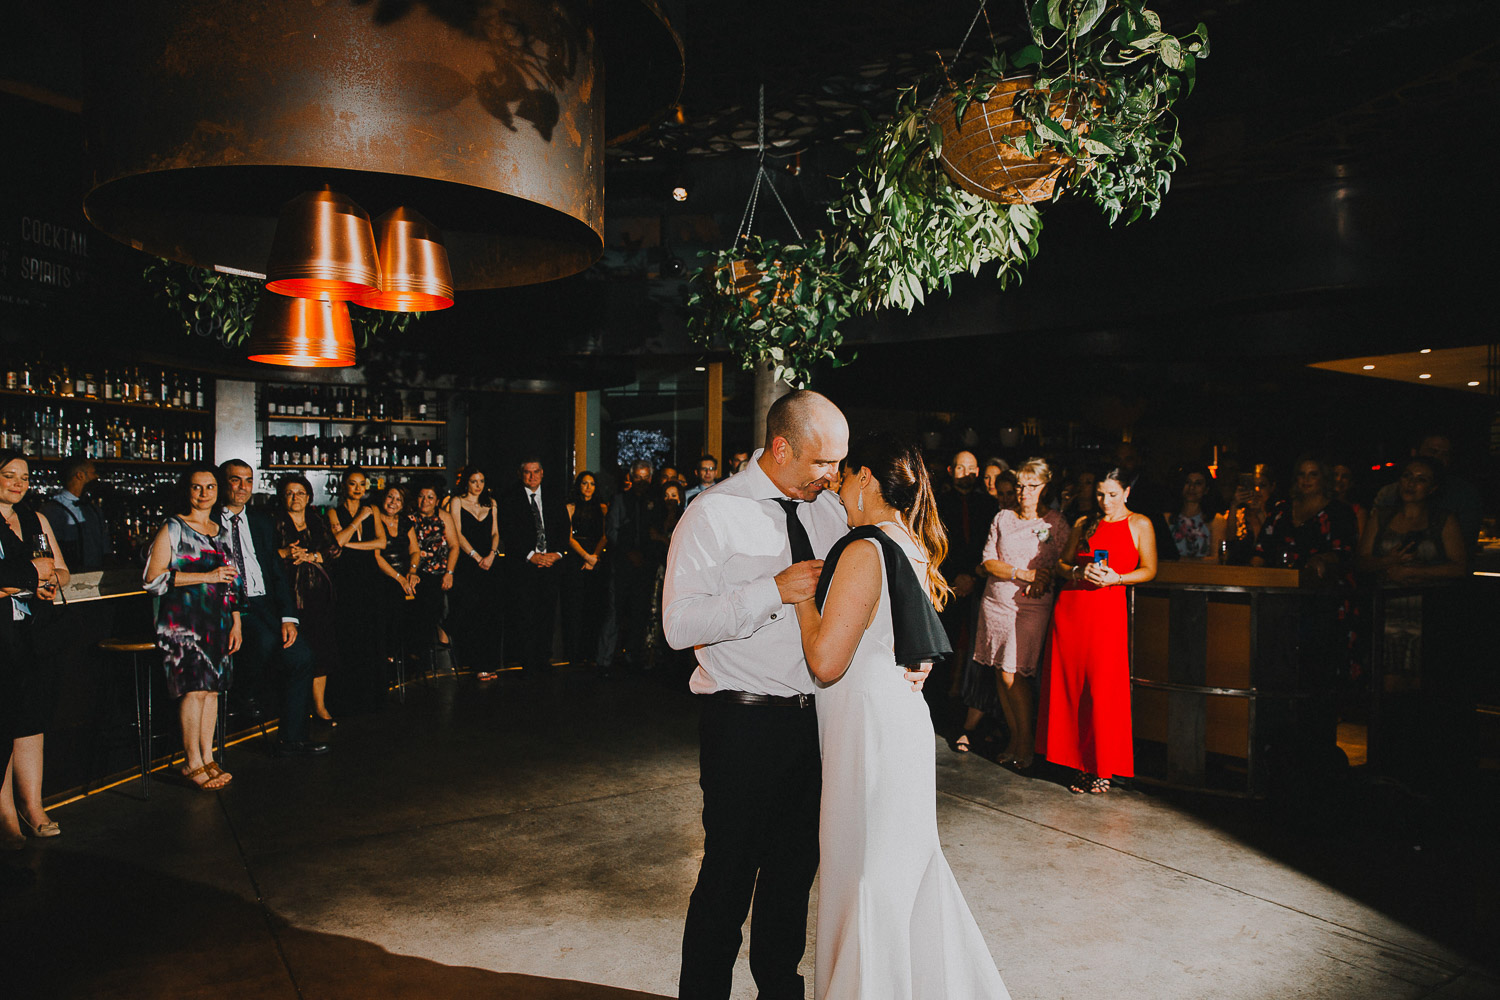 First dance wedding photo at Pony Resturant Brisbane